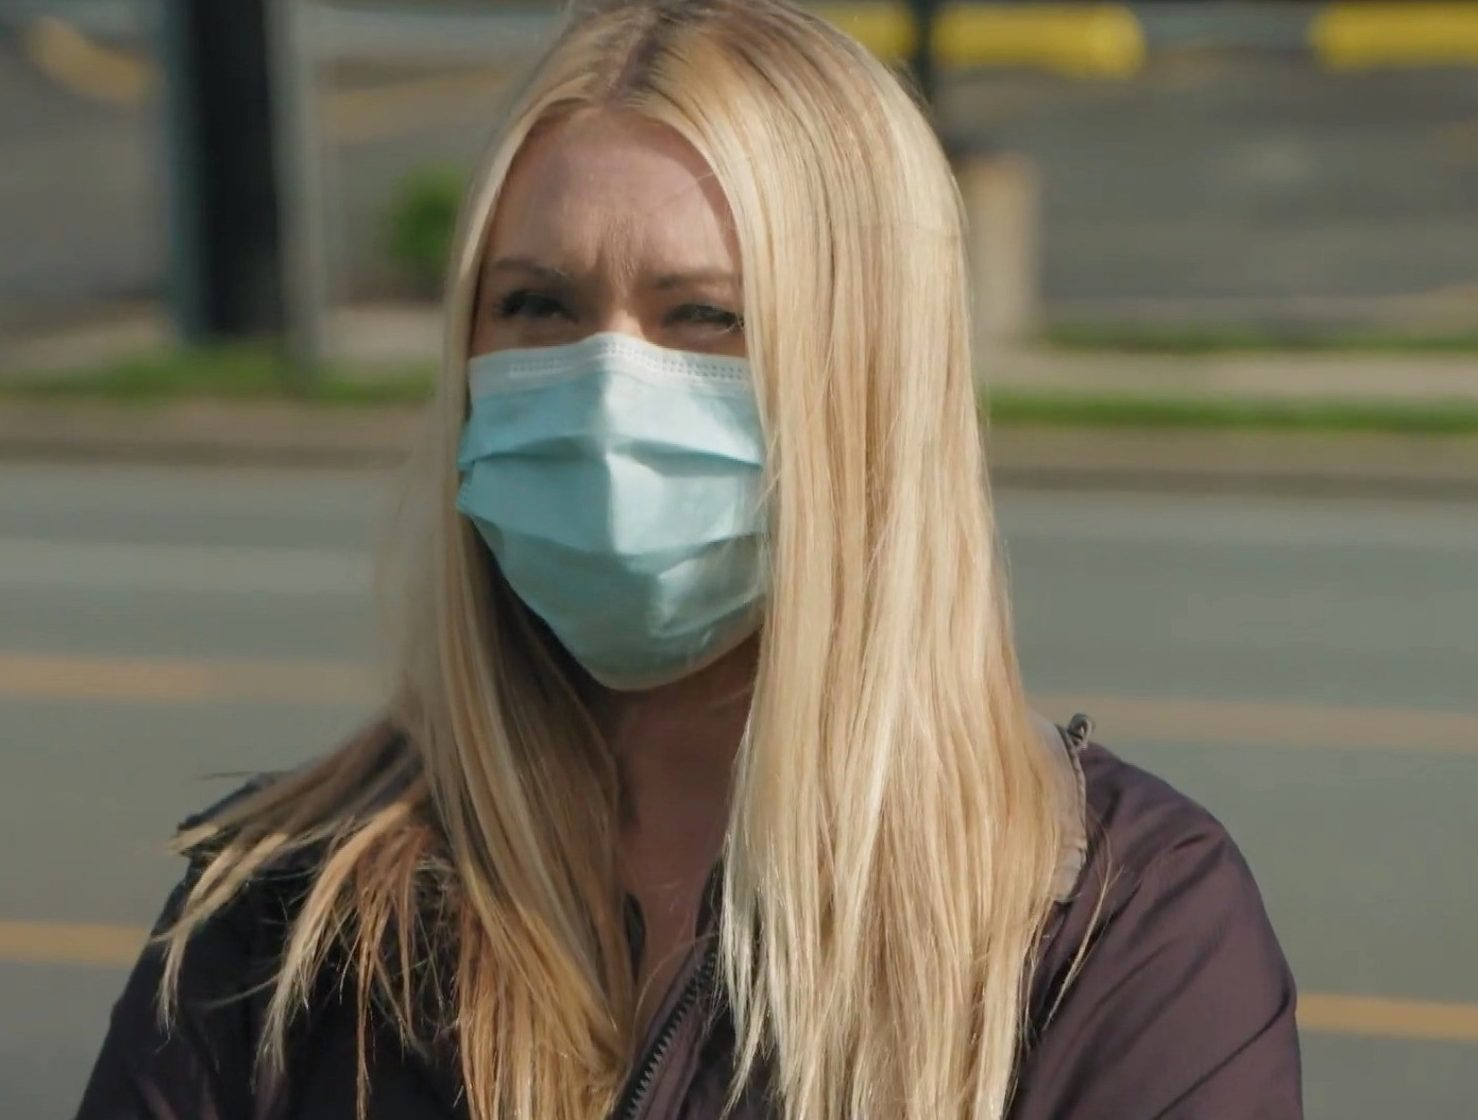 Powers wore a mask as she prepared to meet the landlord at the hotel